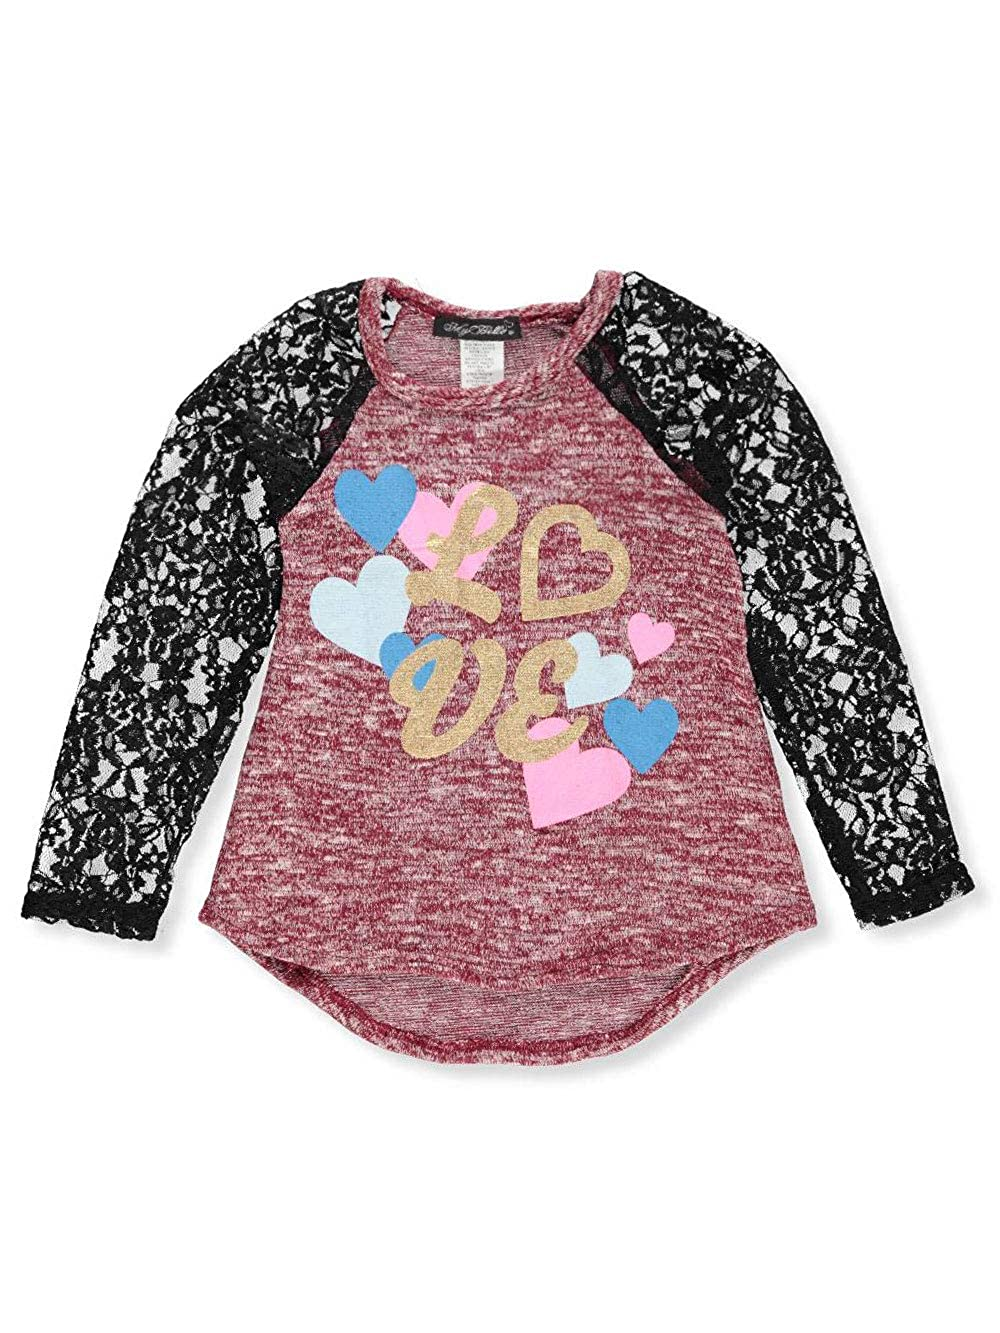 My Belle Girls' L/S Top